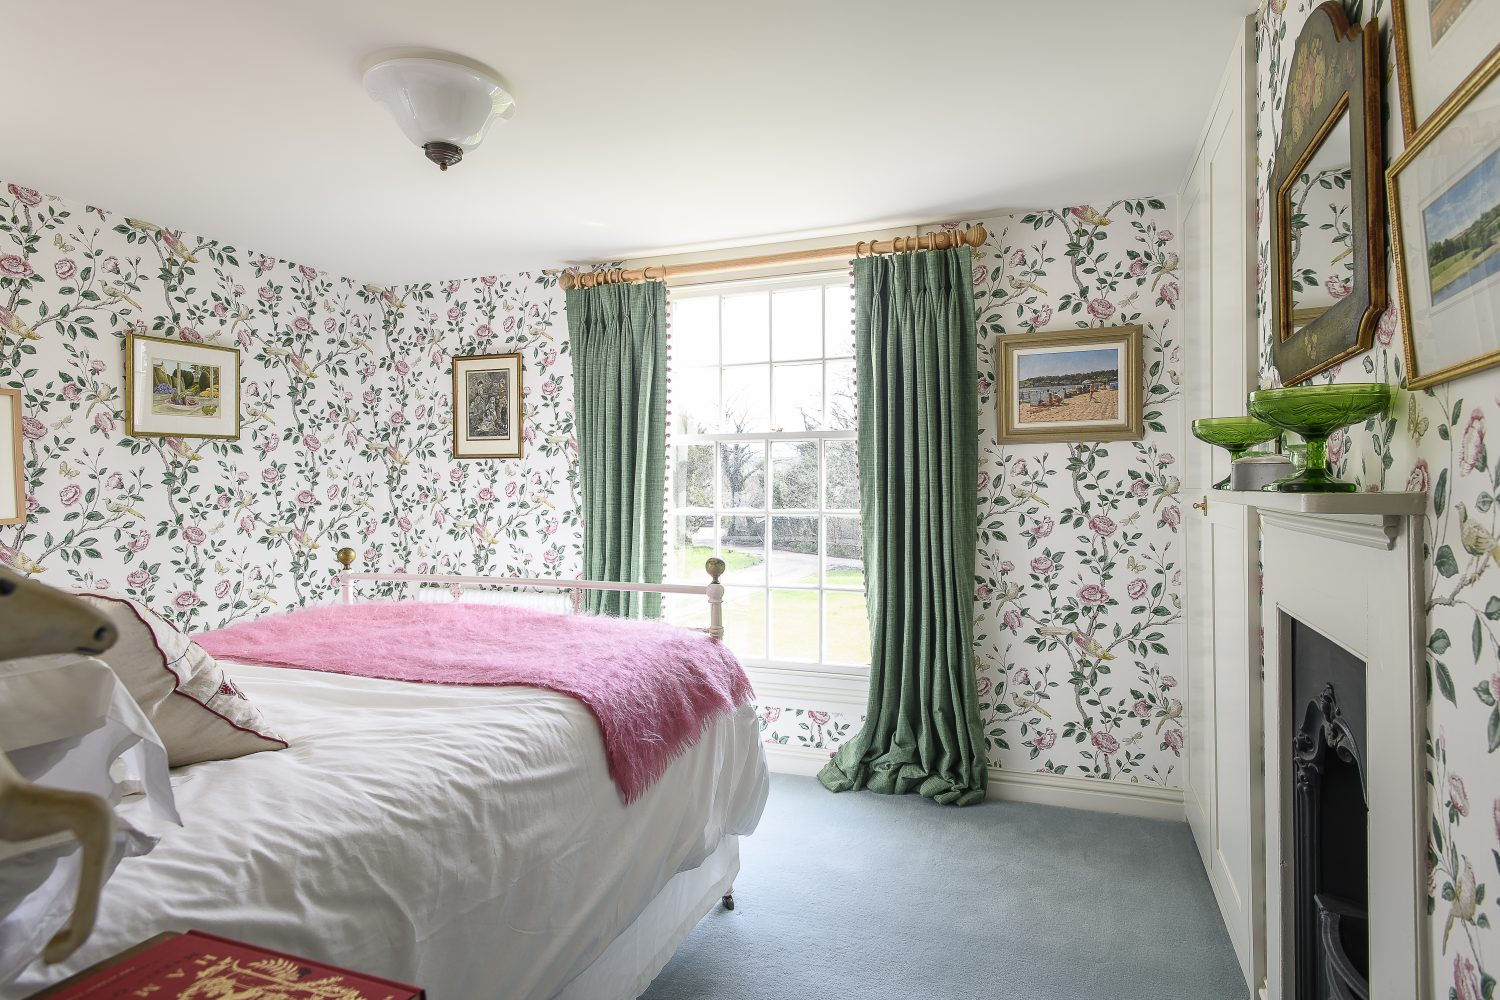 The guest bedrooms are wallpapered in designs by Colefax & Fowler – a lovely floral featuring birds and peonies